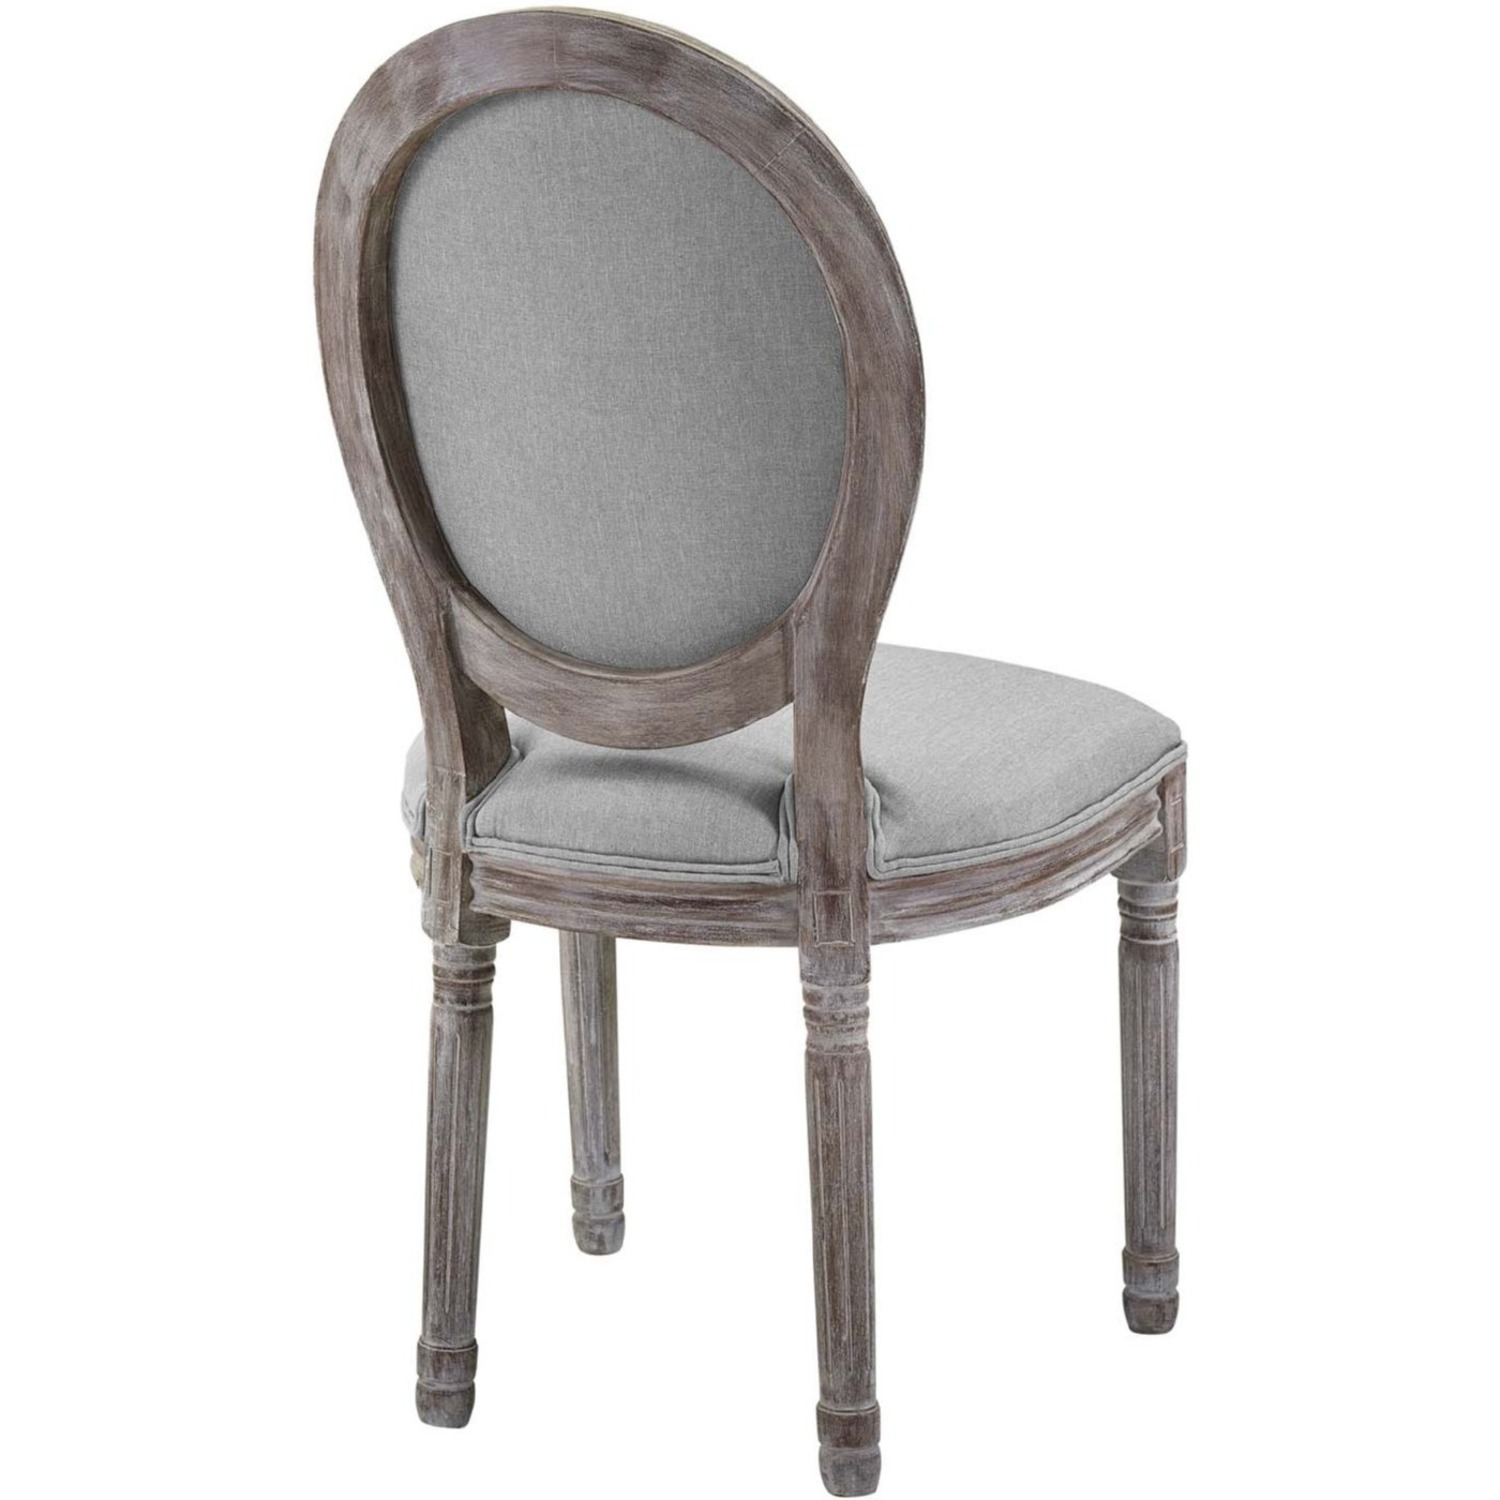 Traditional Dining Chair In Light Gray Finish - image-2